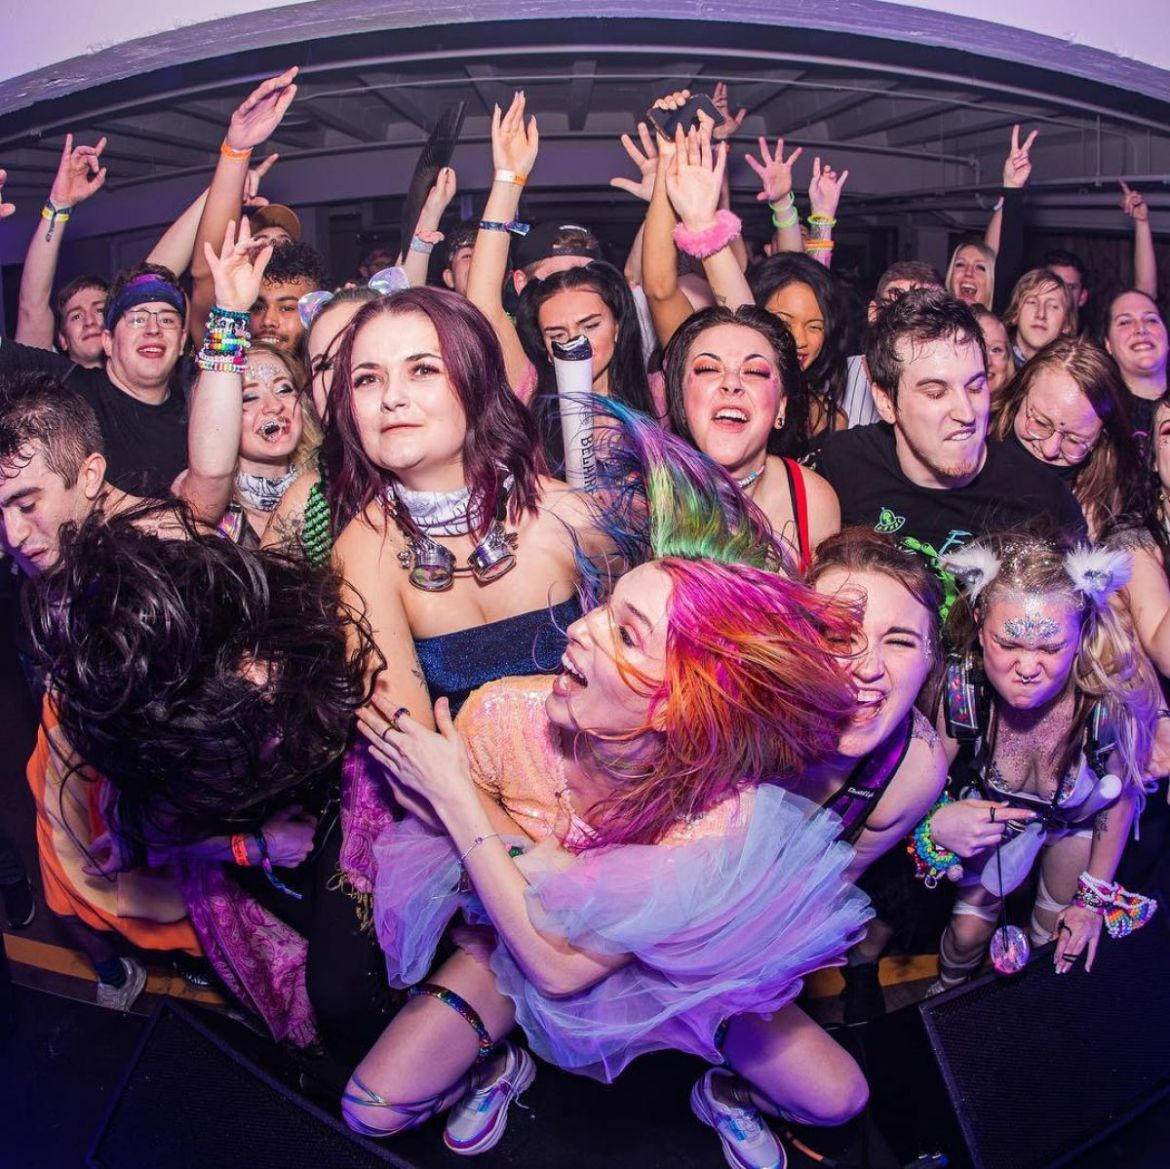 DANI THORNE at New Year's Eve Party – Instagram Pictures